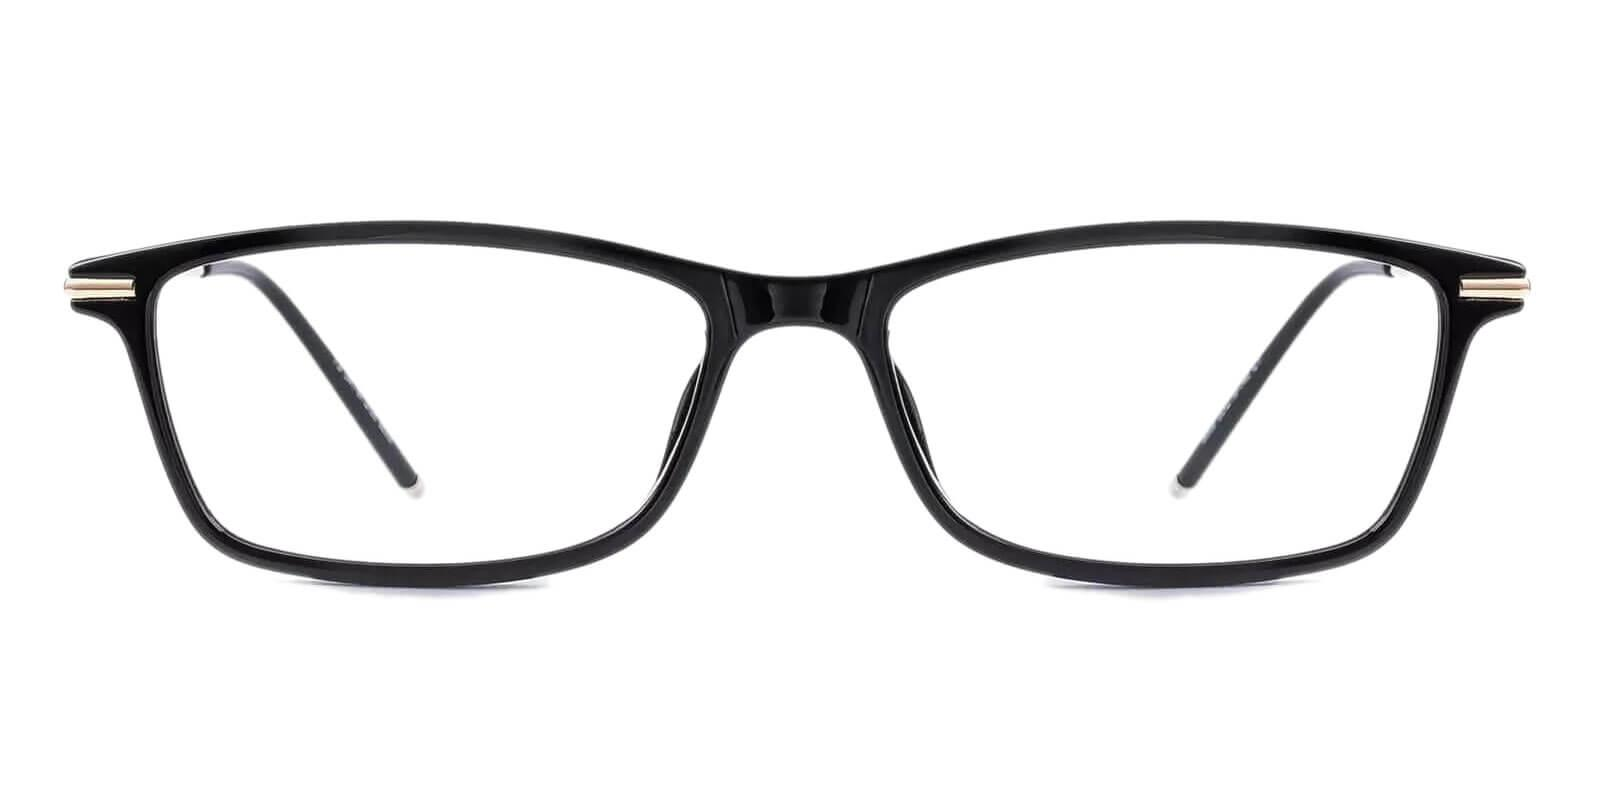 Radcliffe Black TR Lightweight , UniversalBridgeFit , Eyeglasses Frames from ABBE Glasses